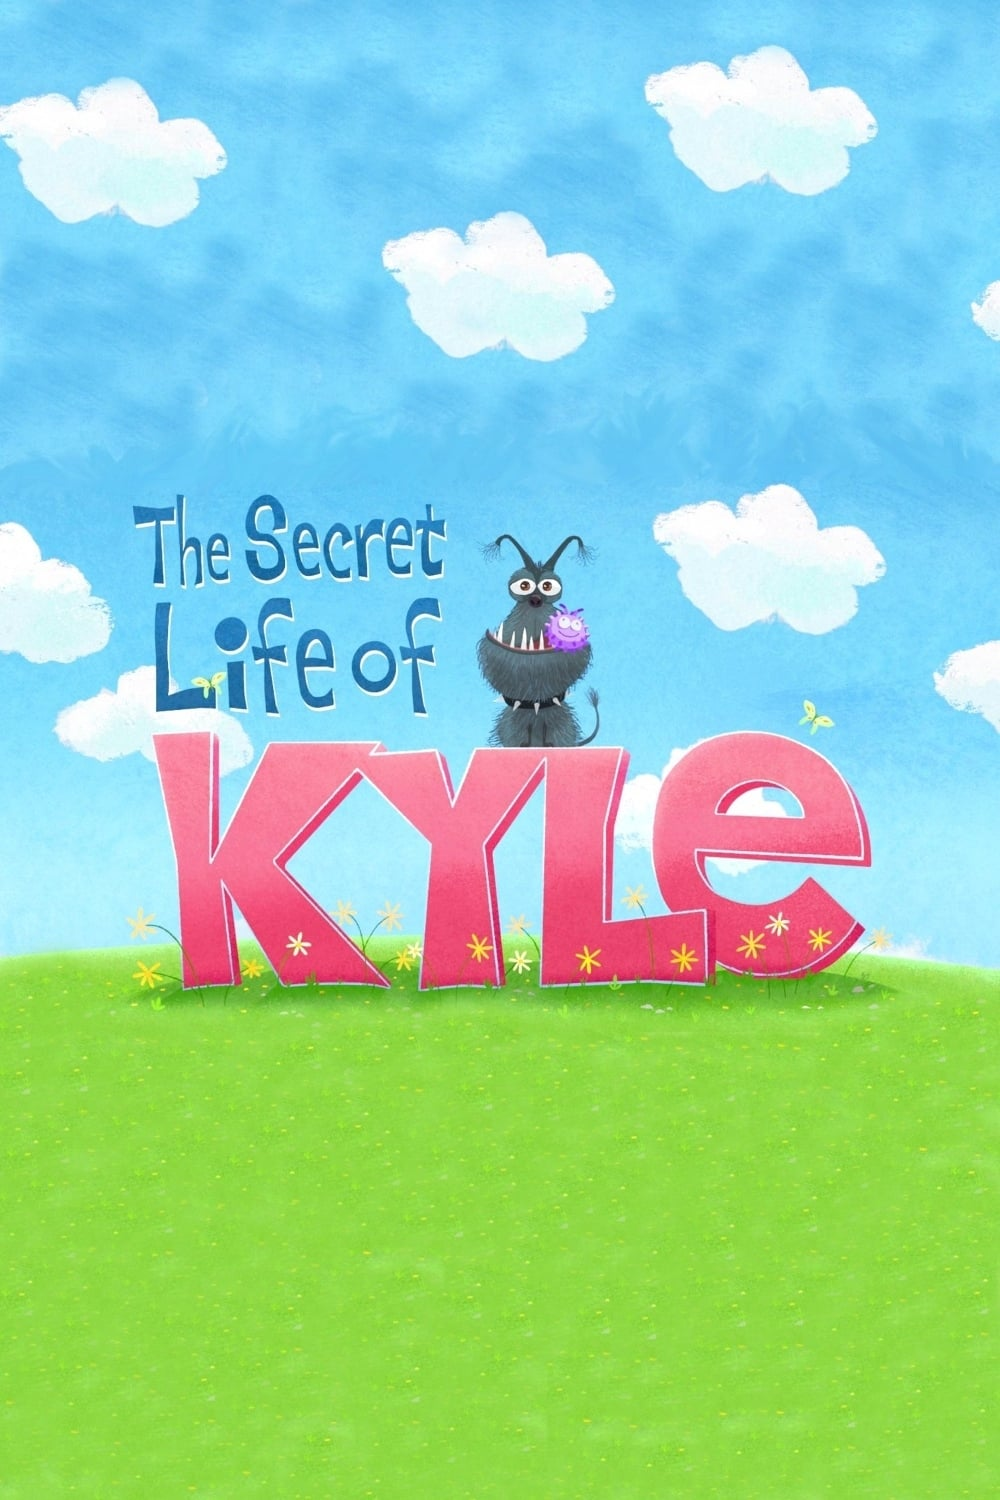 The Secret Life of Kyle